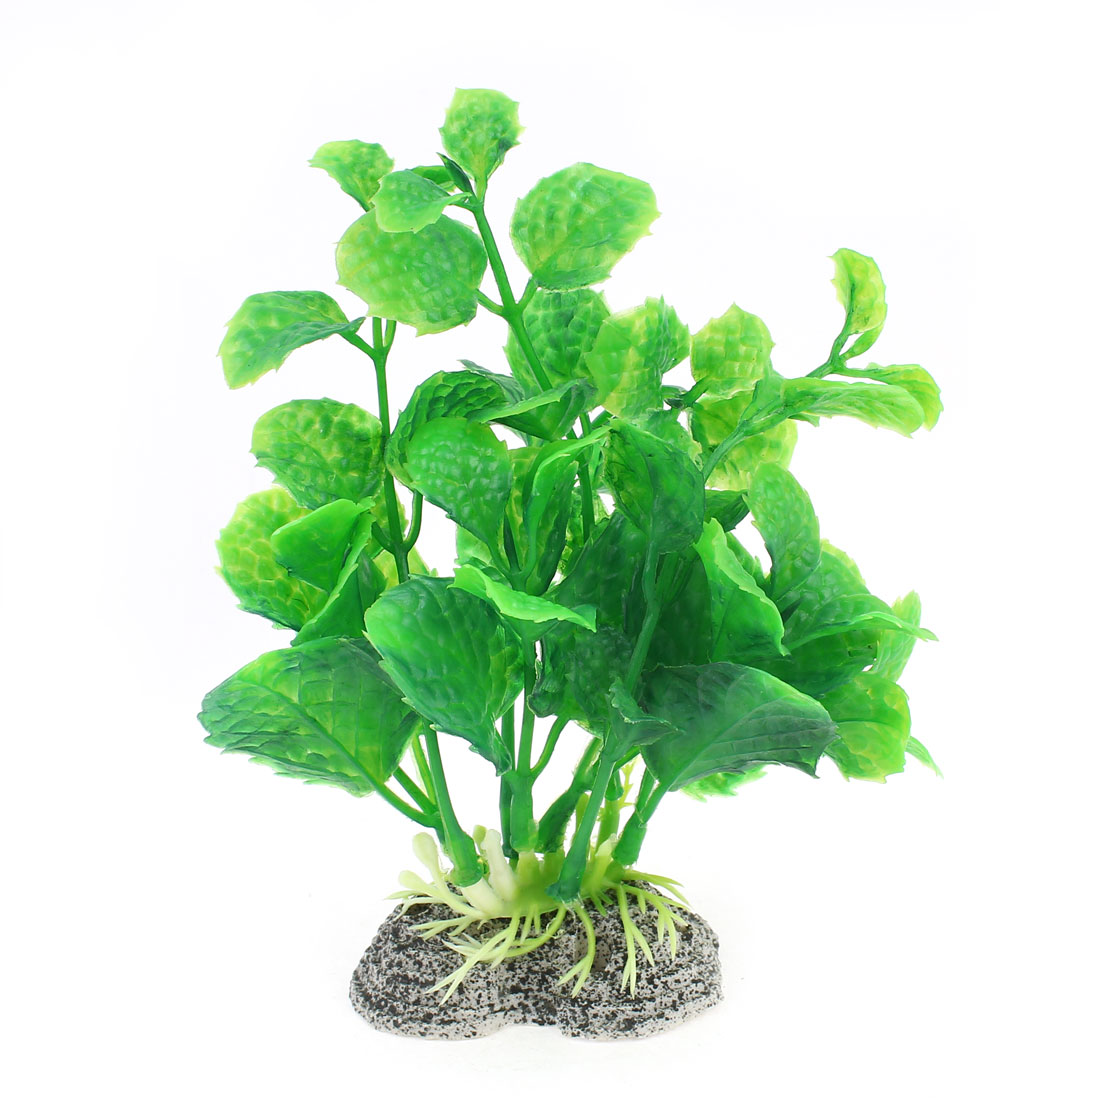 6cm Height Artificial Plastic Green Grass Plant for Aquarium